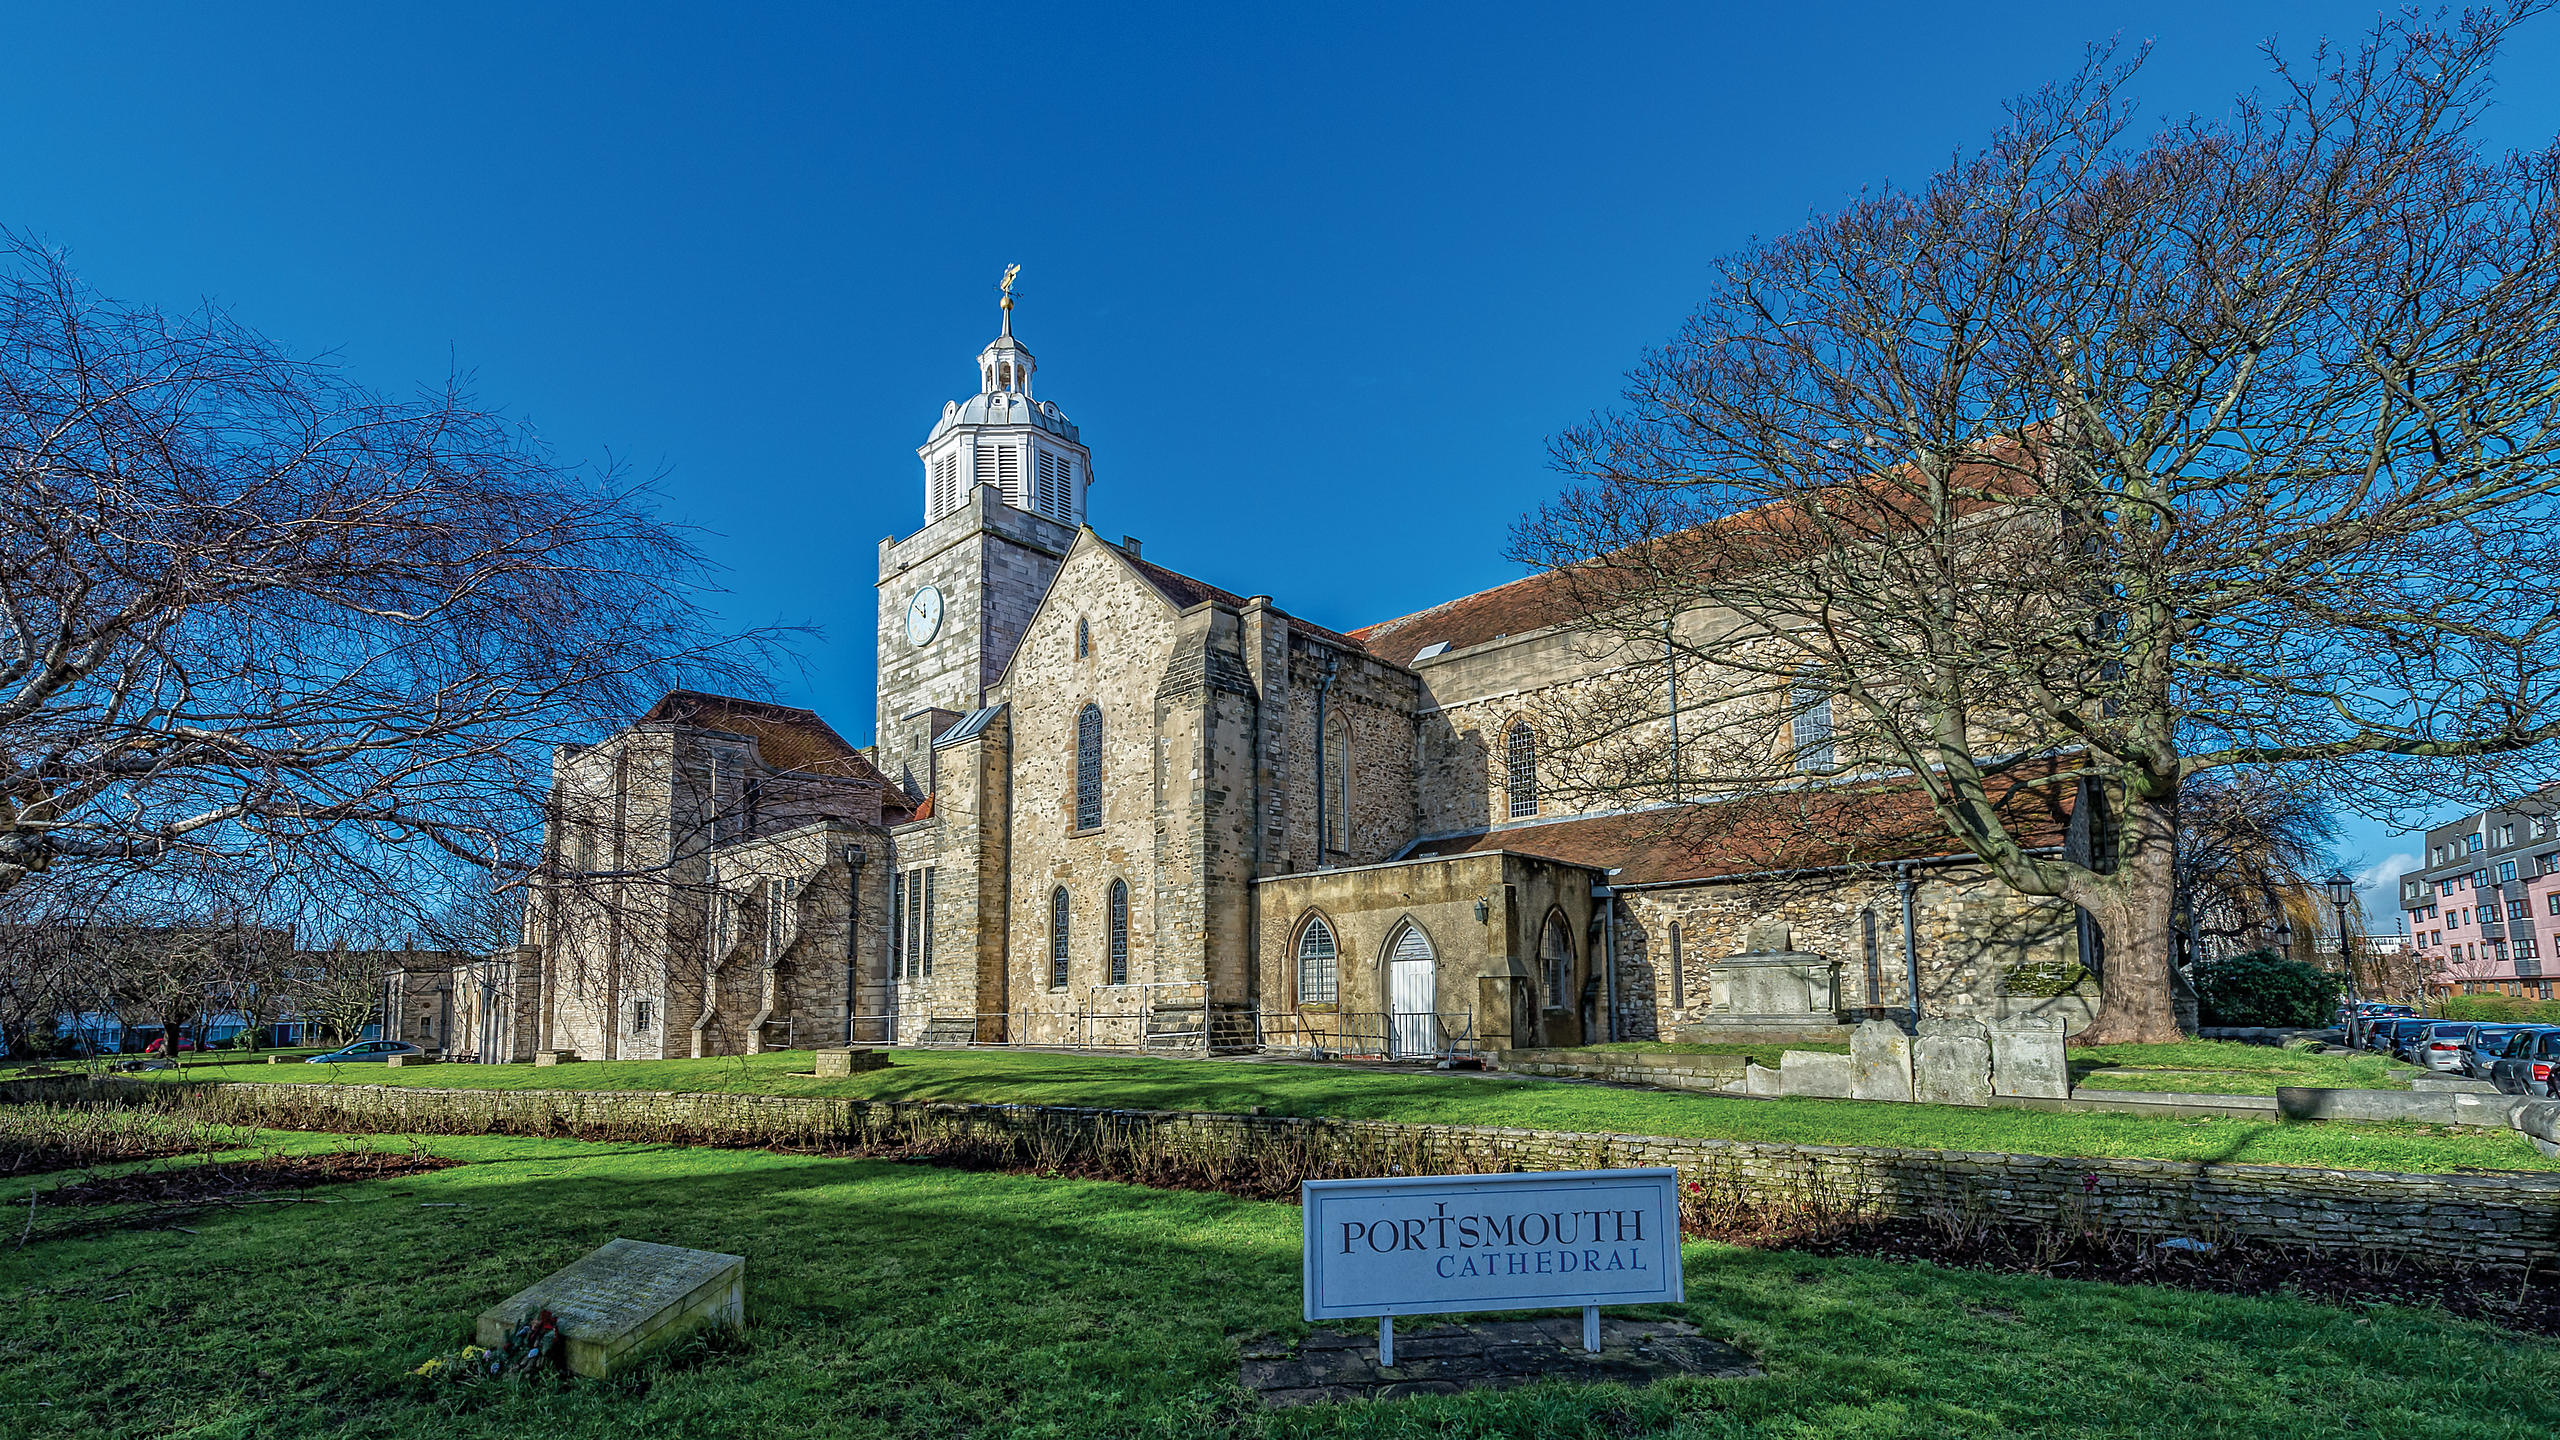 Portsmouth Anglican Cathedral